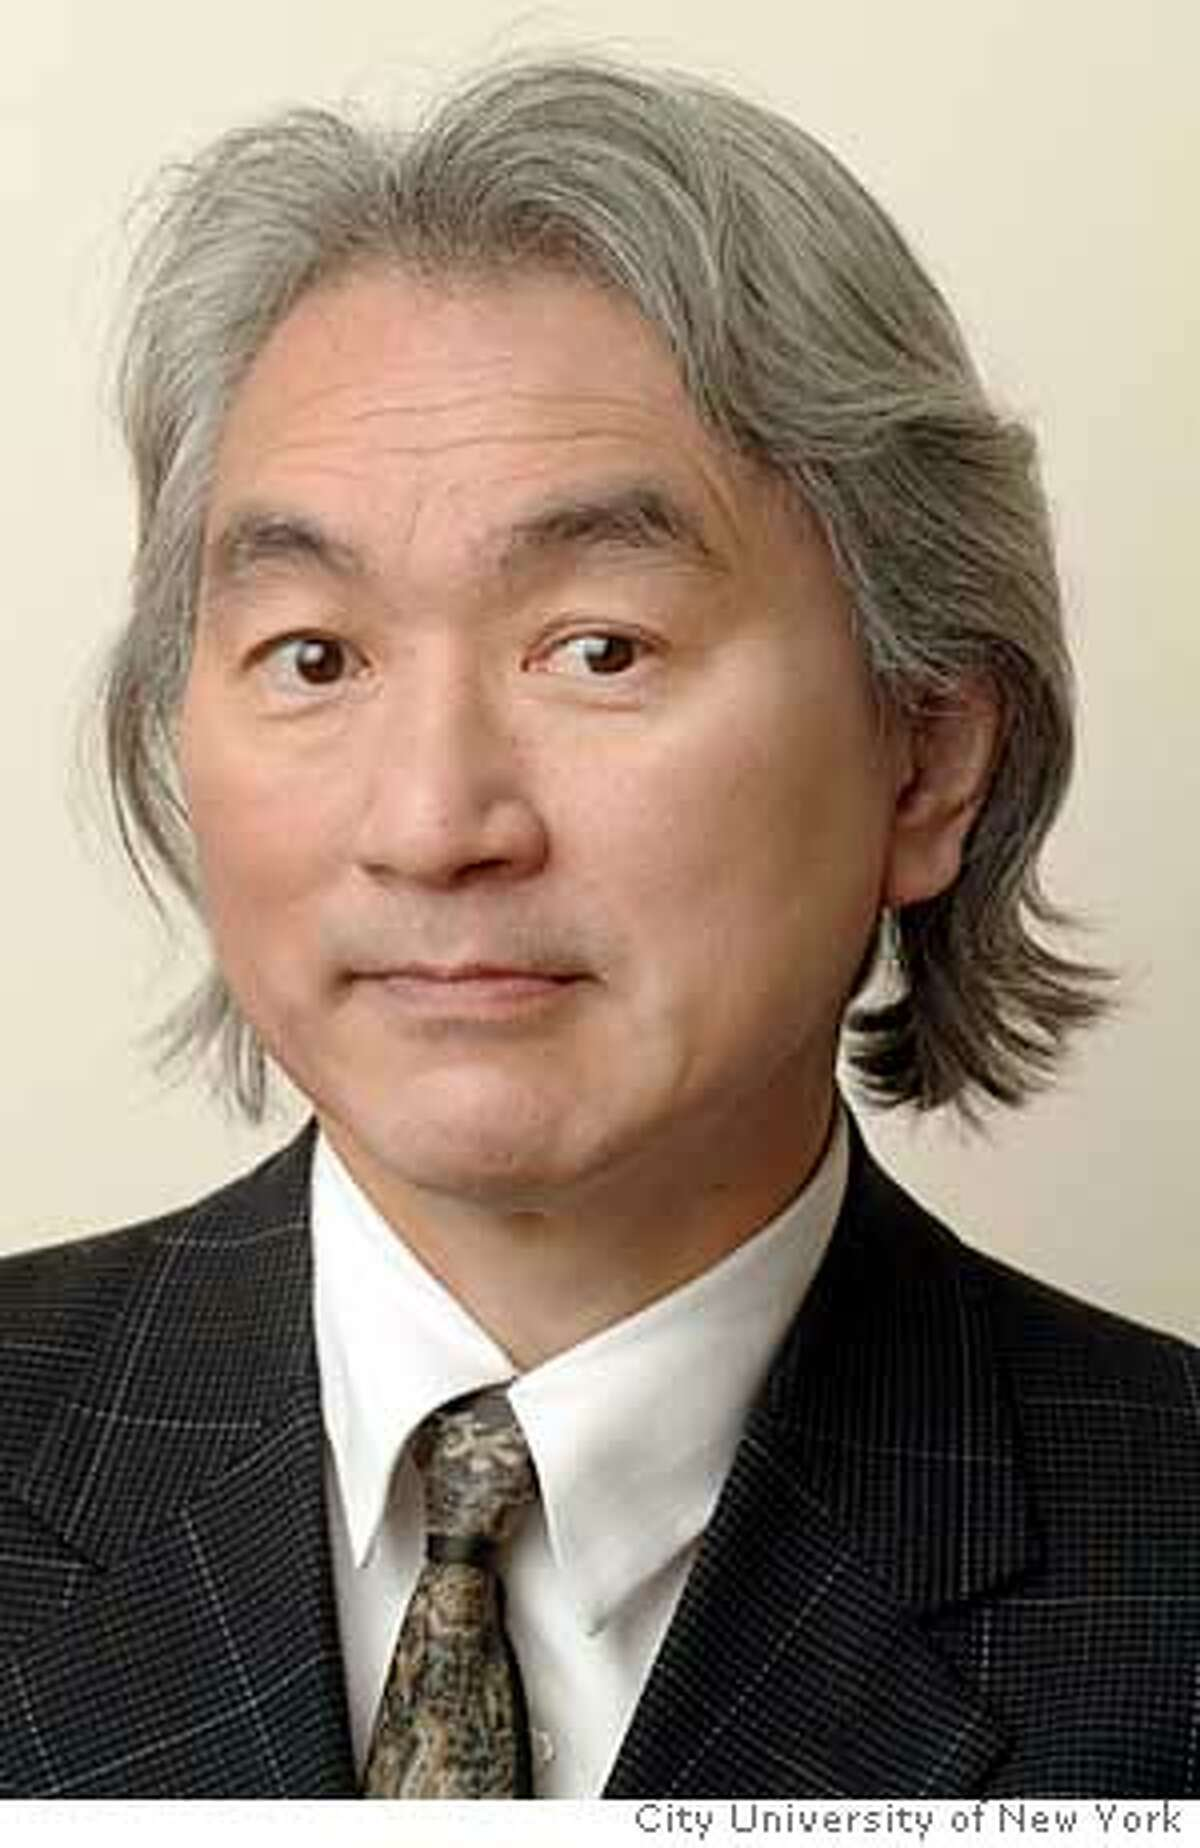 Photo of physicist Michio Kaku of City University of New York. (For story about his disagreement with Lawrence Krauss). Photo: Courtesy of City University of New York